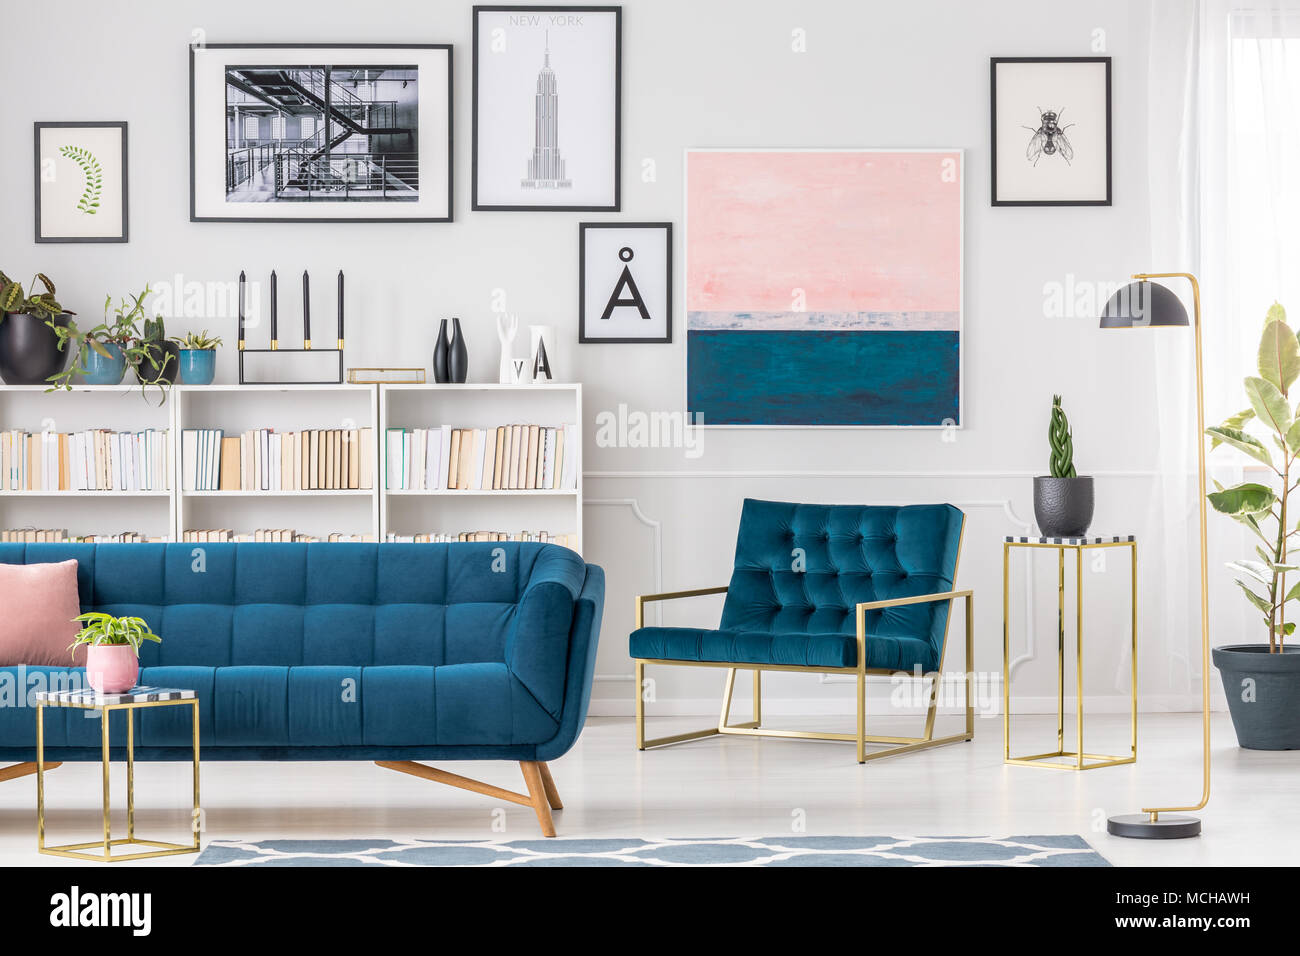 Artistic living room interior with blue sofa and armchair, paintings ...